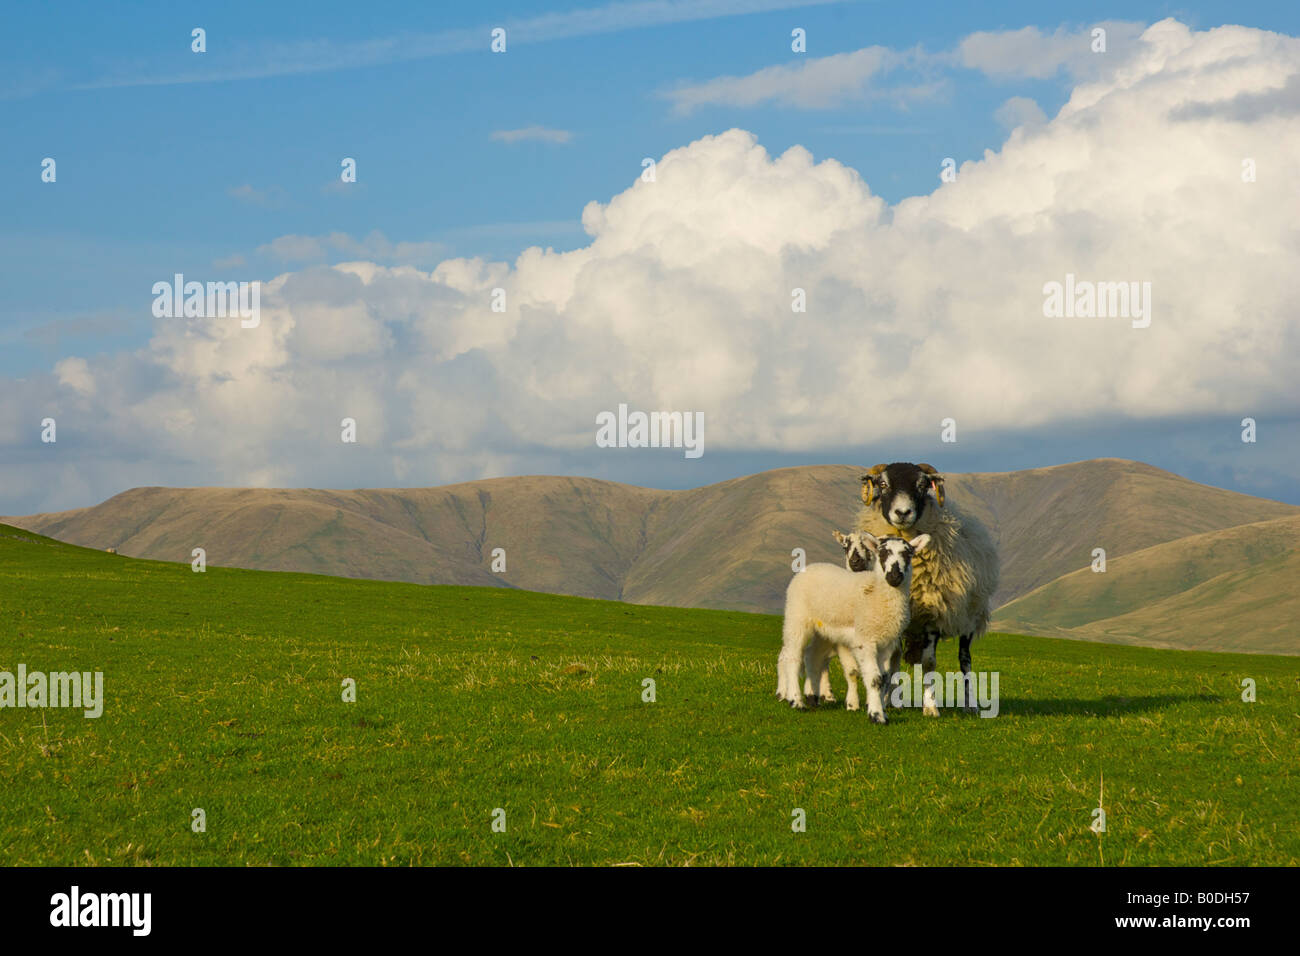 sheep-and-two-lambs-on-firbank-fell-with-howgill-hills-in-the-background-B0DH57.jpg